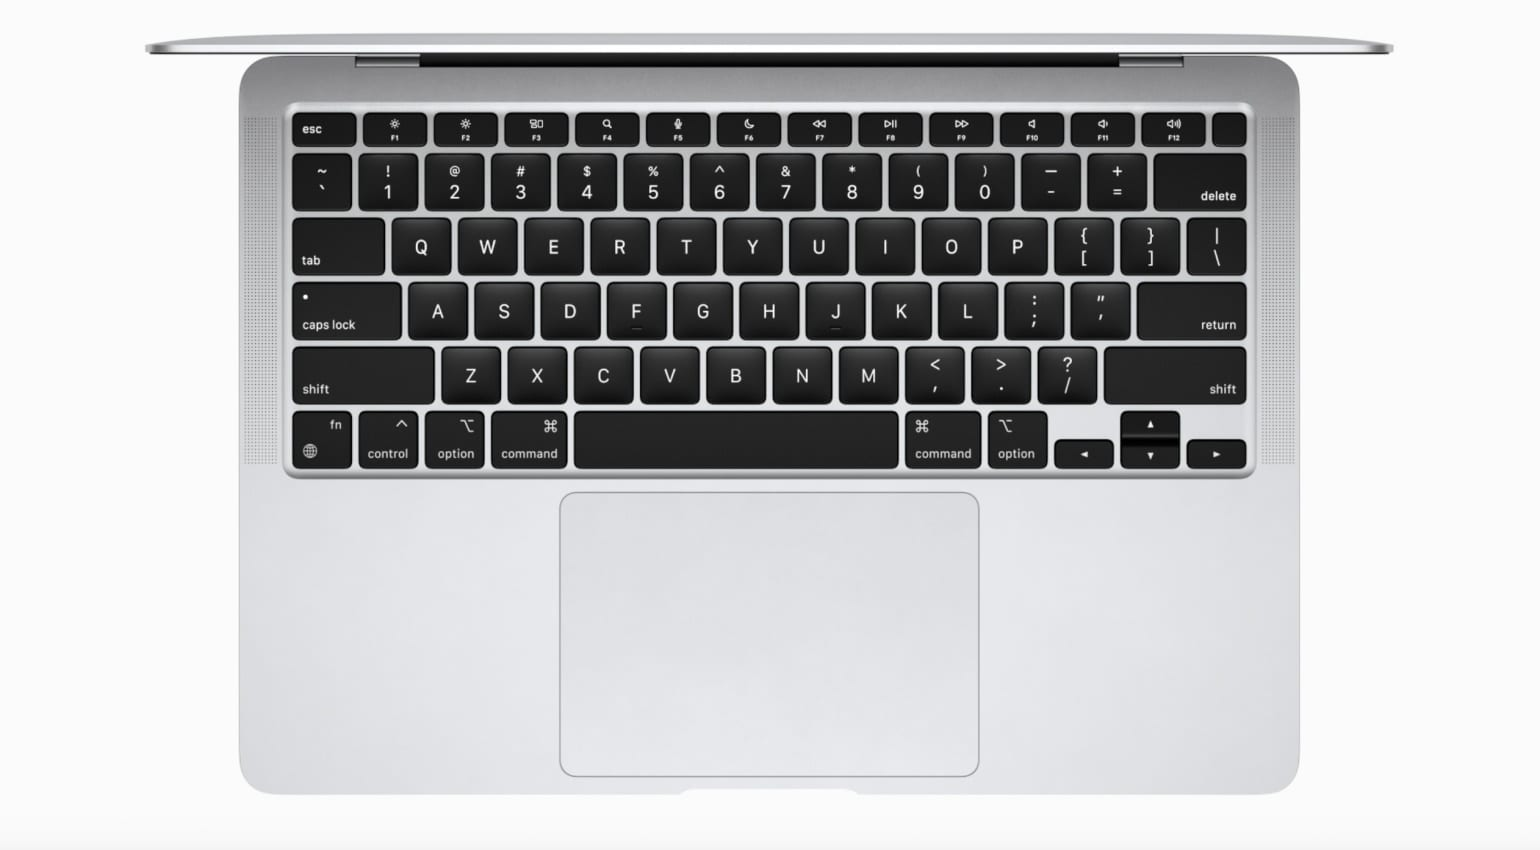 Apple MacBook Air M1 2020 - Keyboard